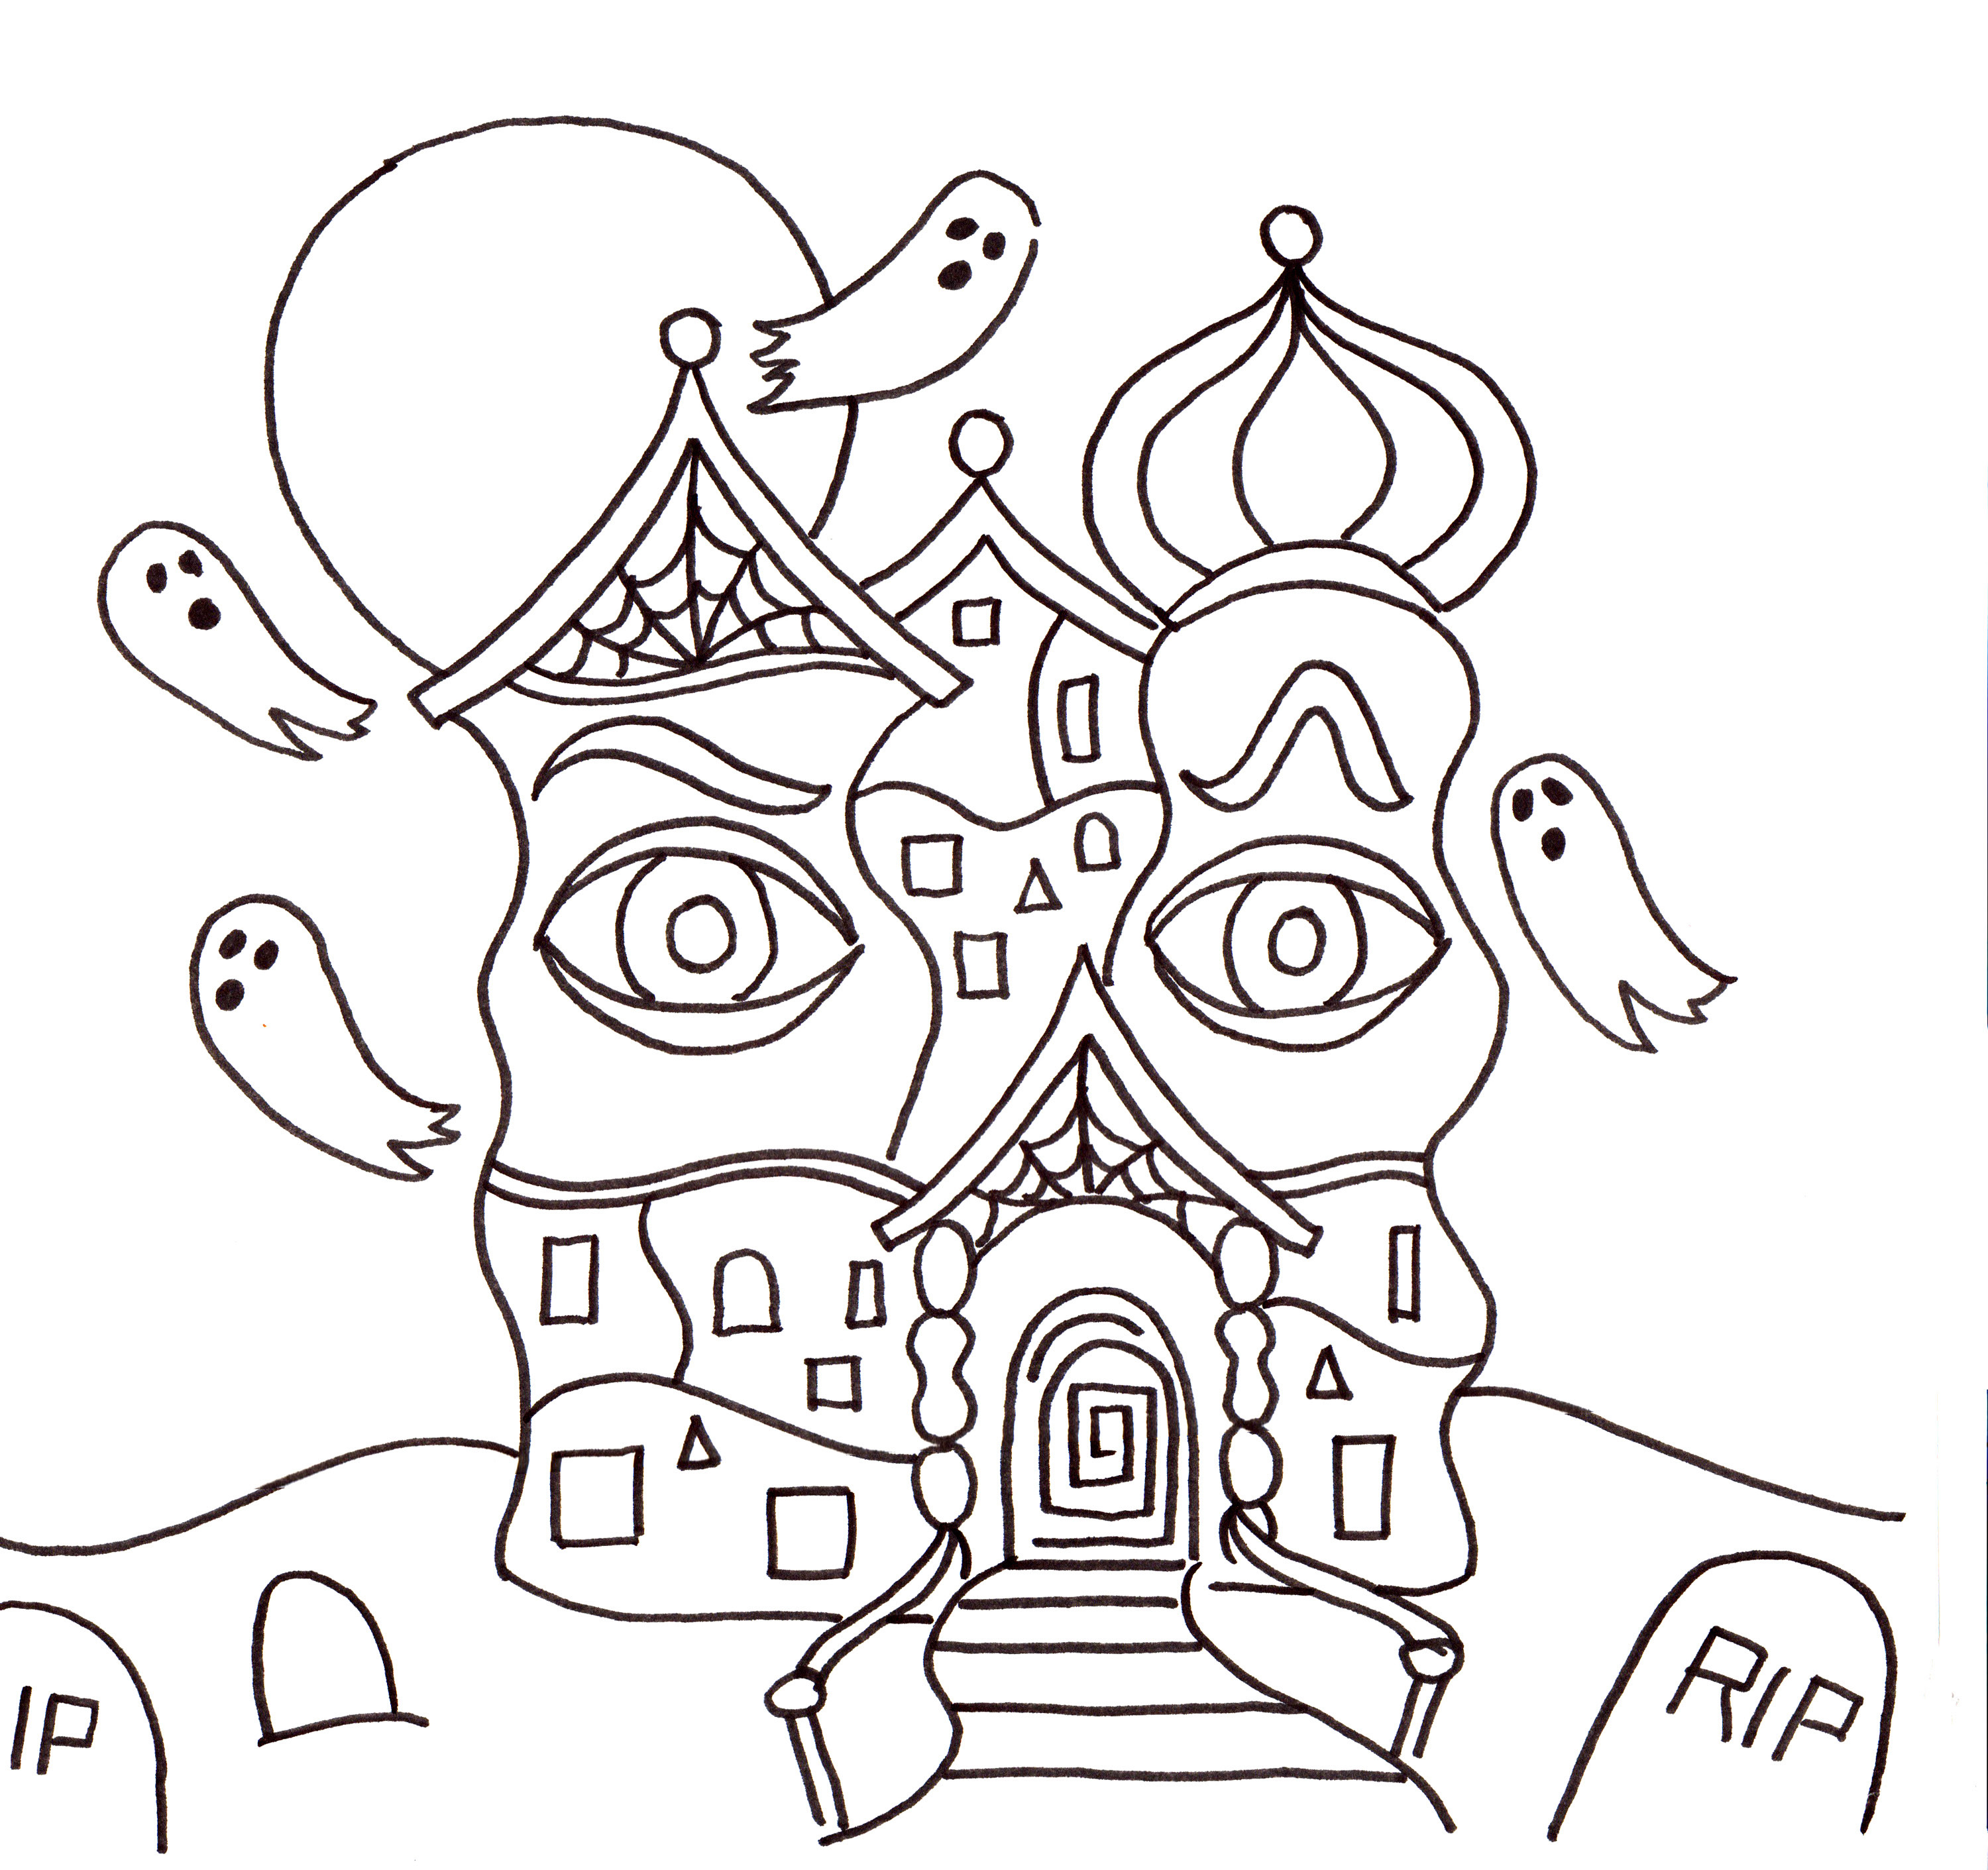 Drawn haunted house haus Lesson House Lesson House Connection